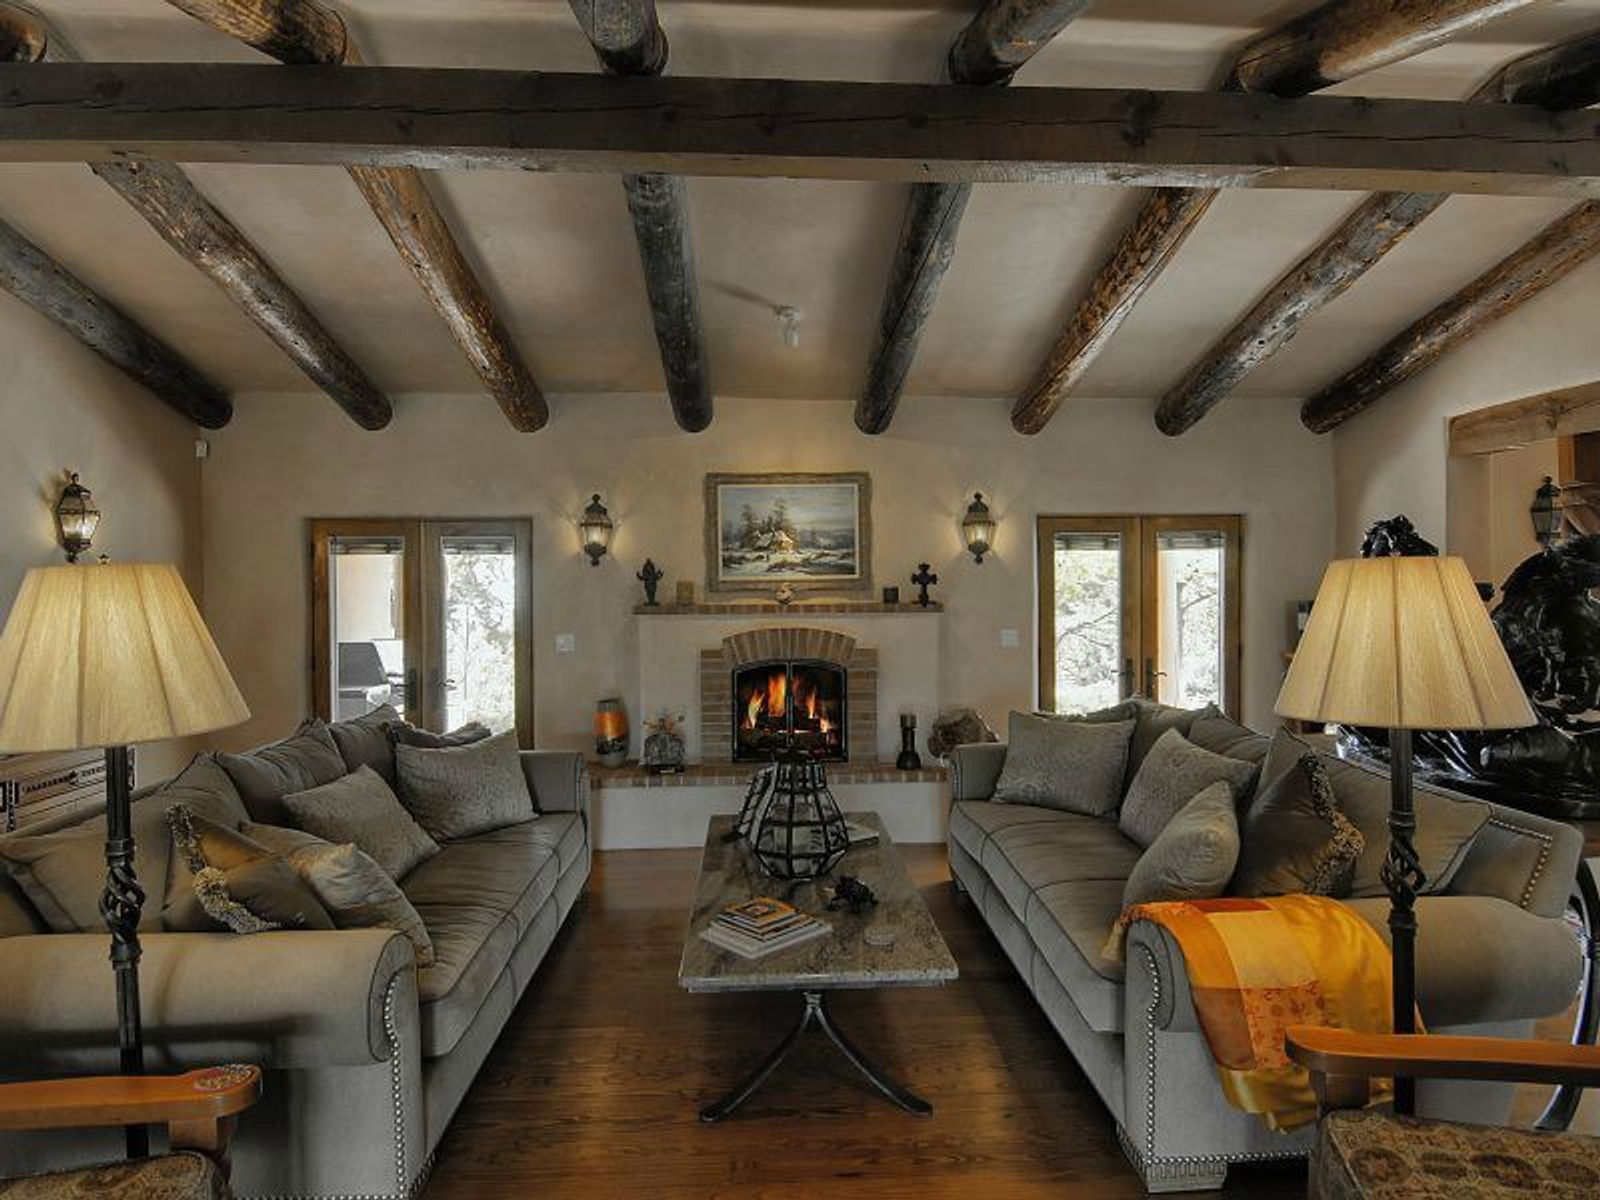 1267 Spanish Hill, Santa Fe NM Single Family Home - Santa Fe Real Estate